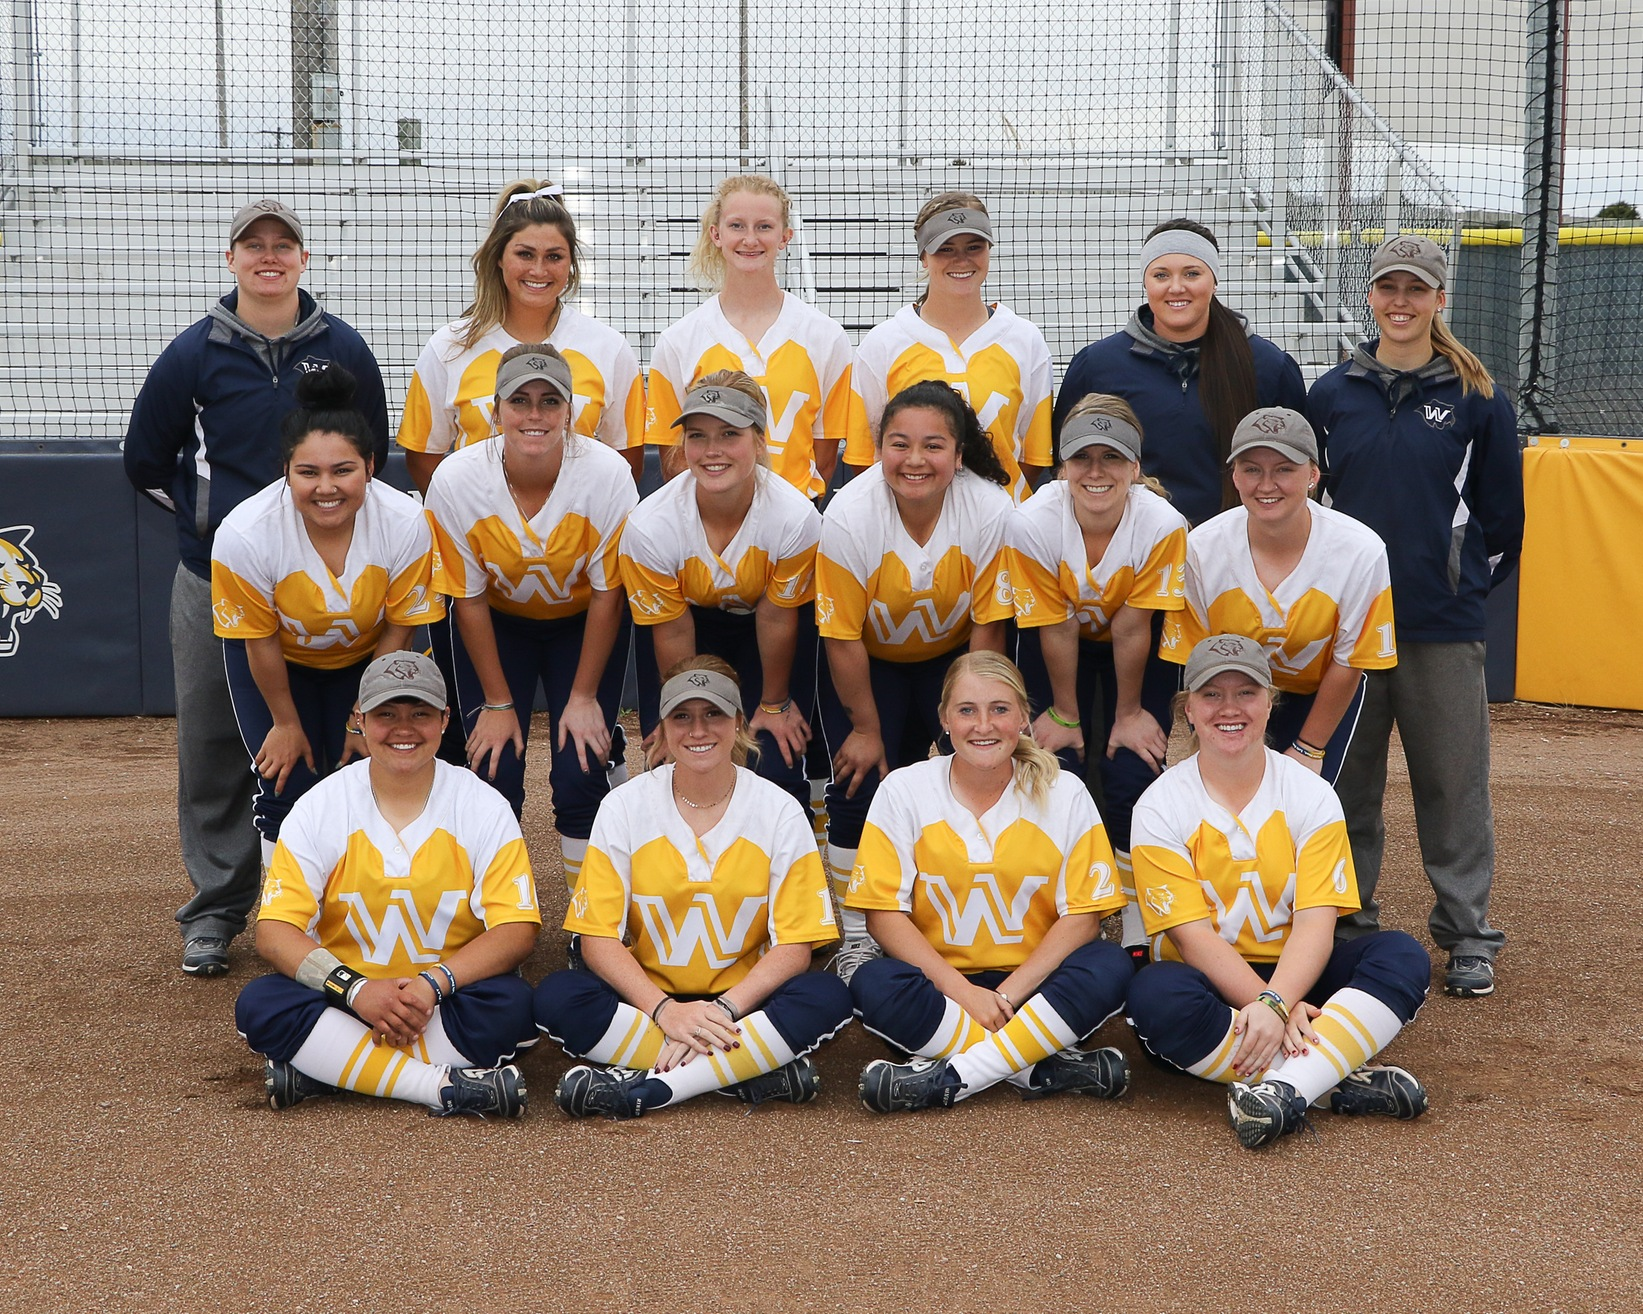 WNCC Softball Team